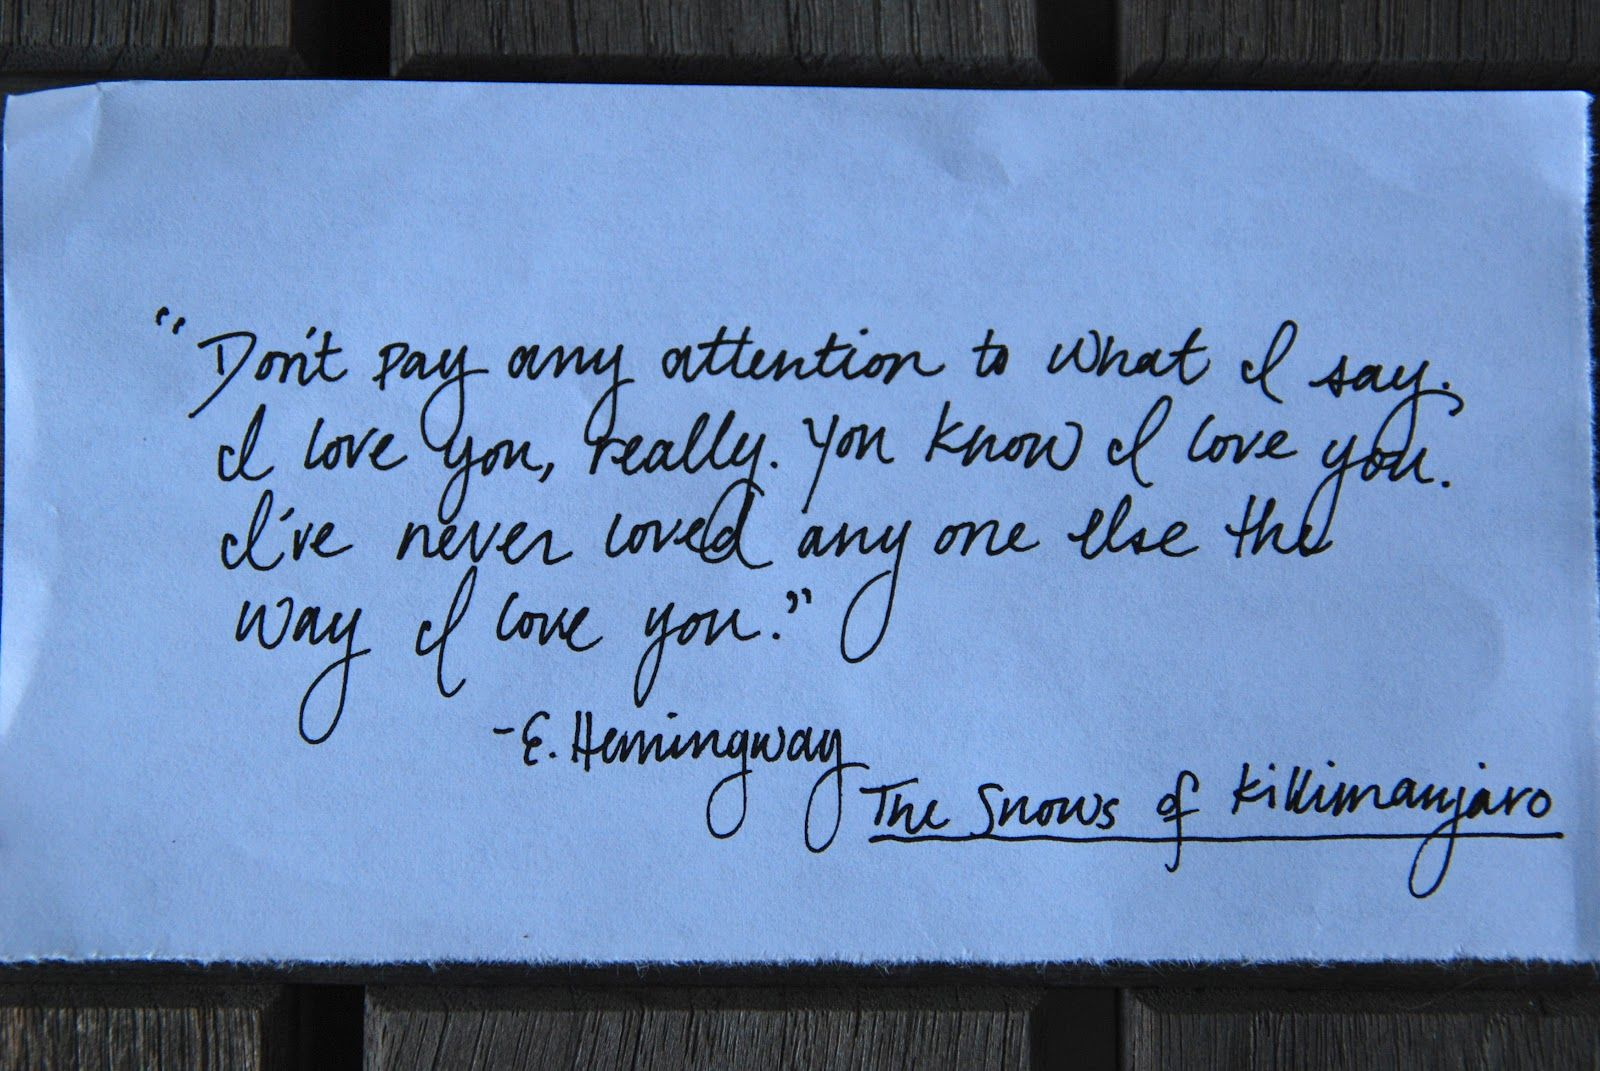 Sailing Quotes Hemingway Quotesgram: Hemingway, The Snows Of Kilimanjaro